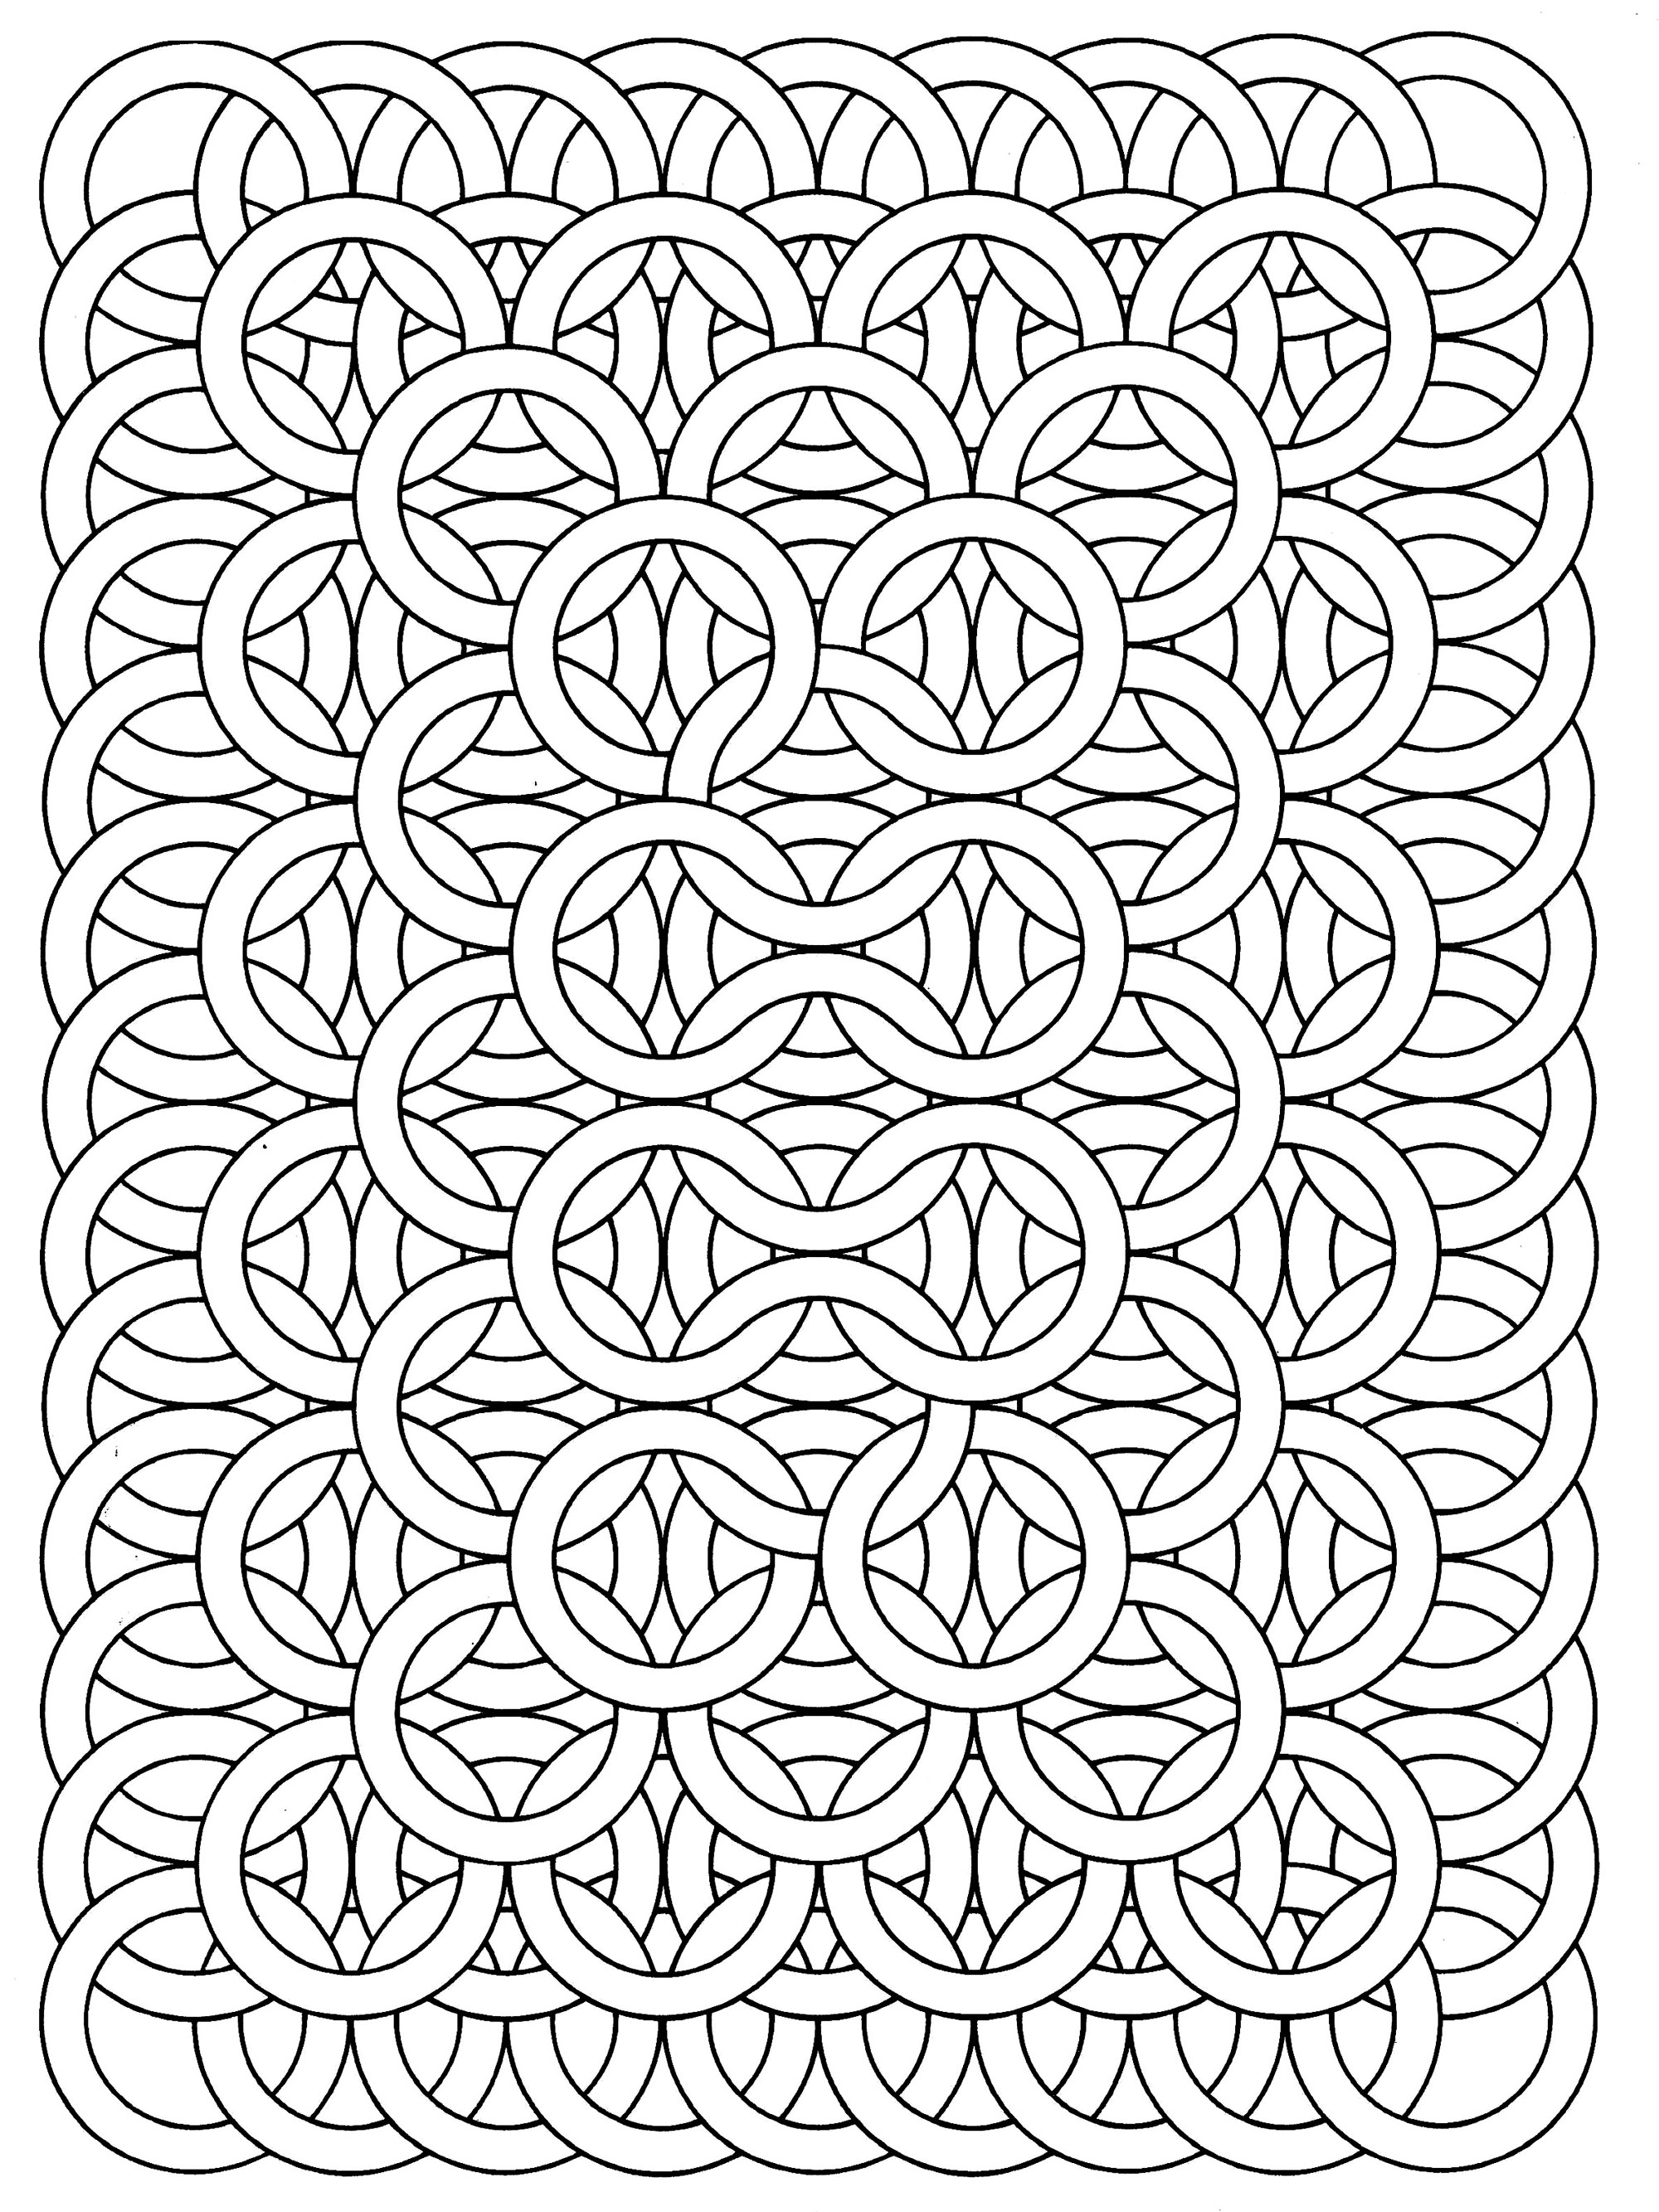 Adult Coloring Pages Free Adult Coloring Pages Happiness Is Homemade